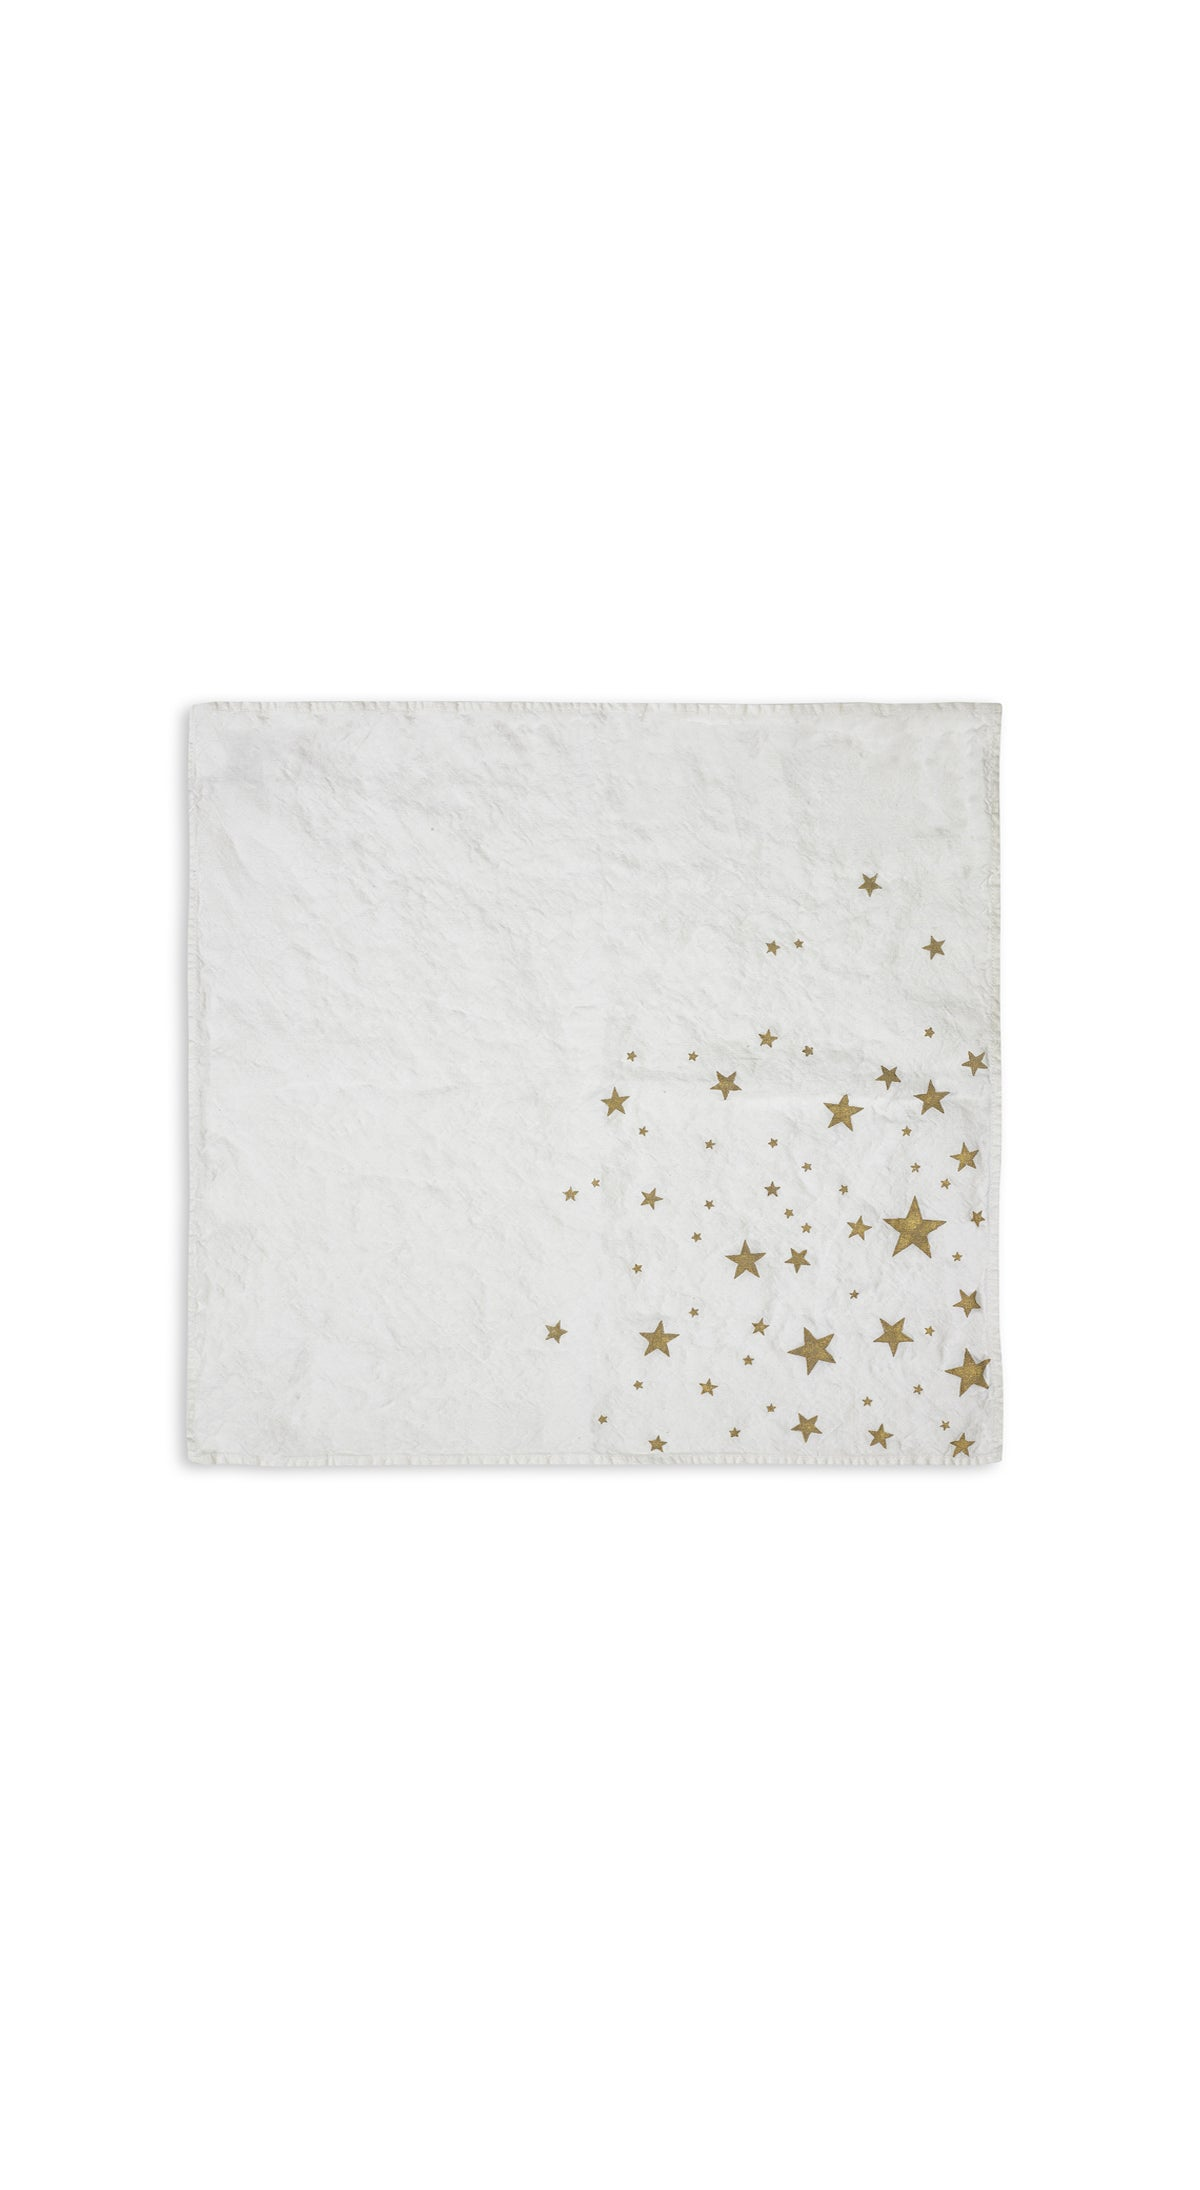 Falling Stars Linen Napkin in White with Gold Stars